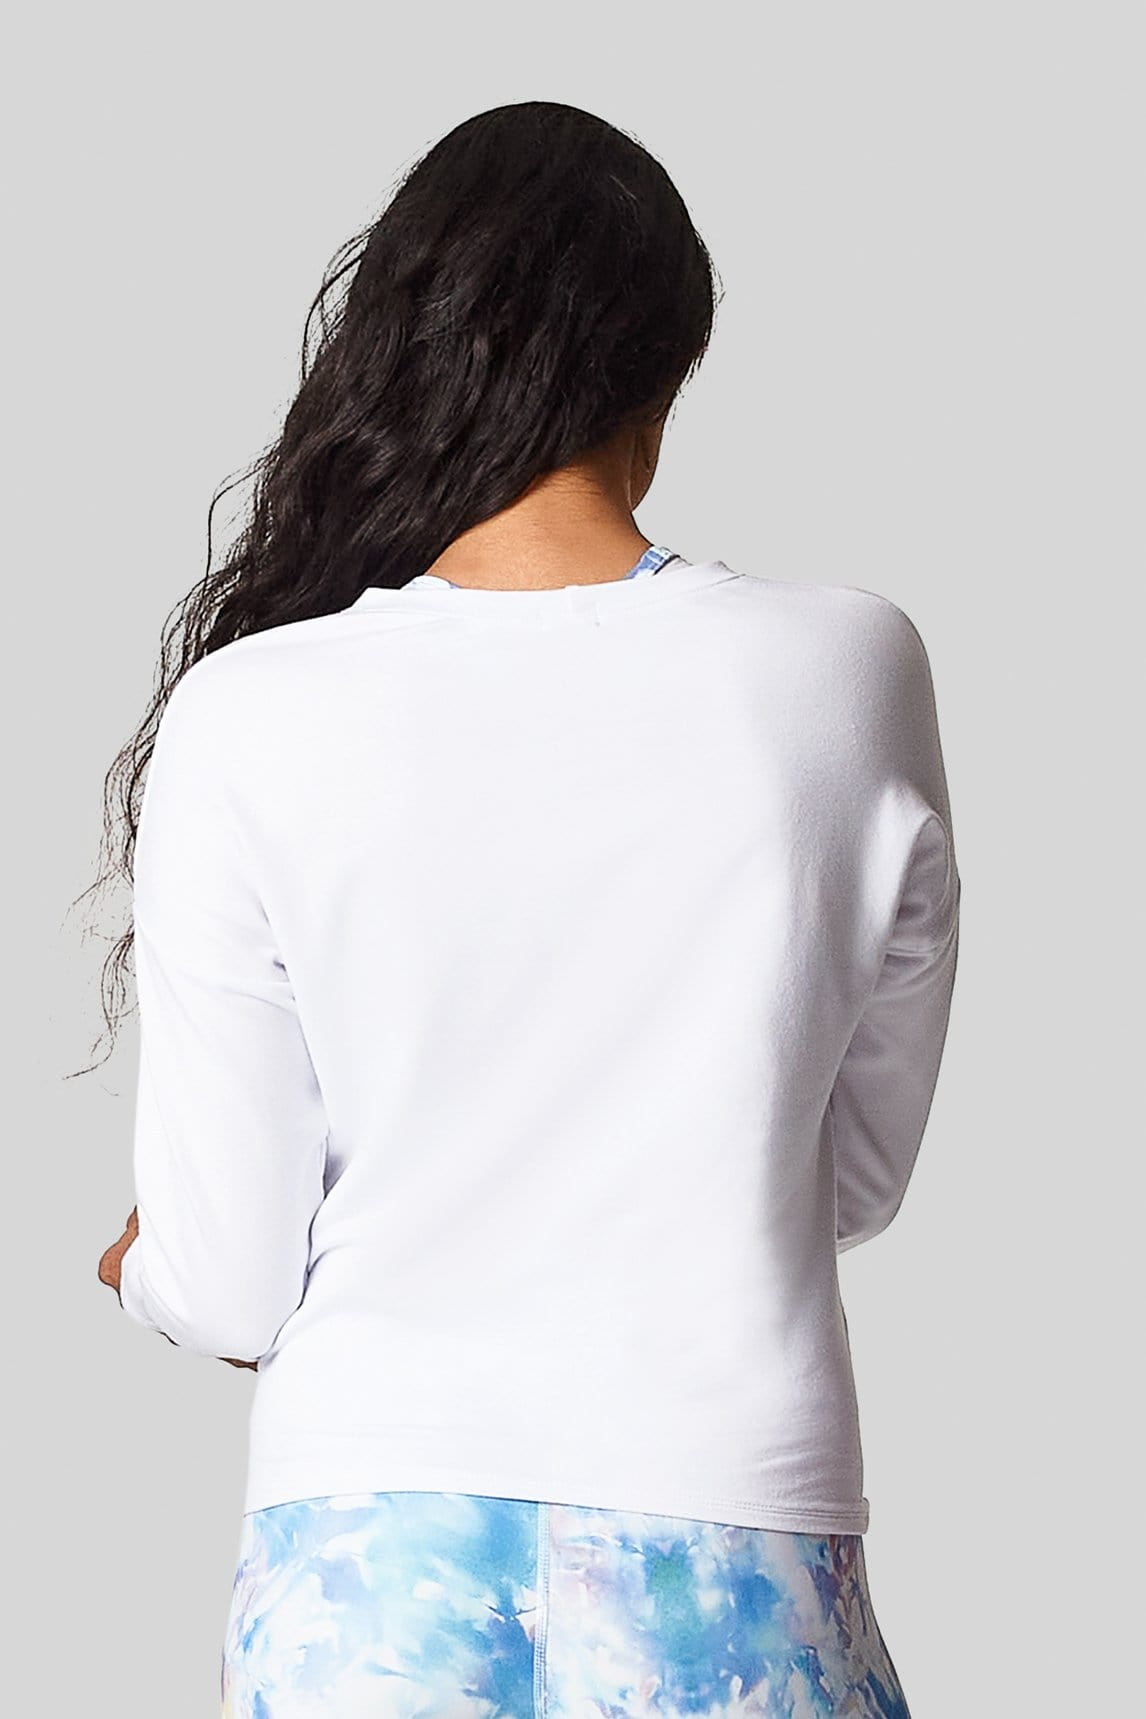 A back view of a woman wearing a white, hip length french terry sweatshirt.